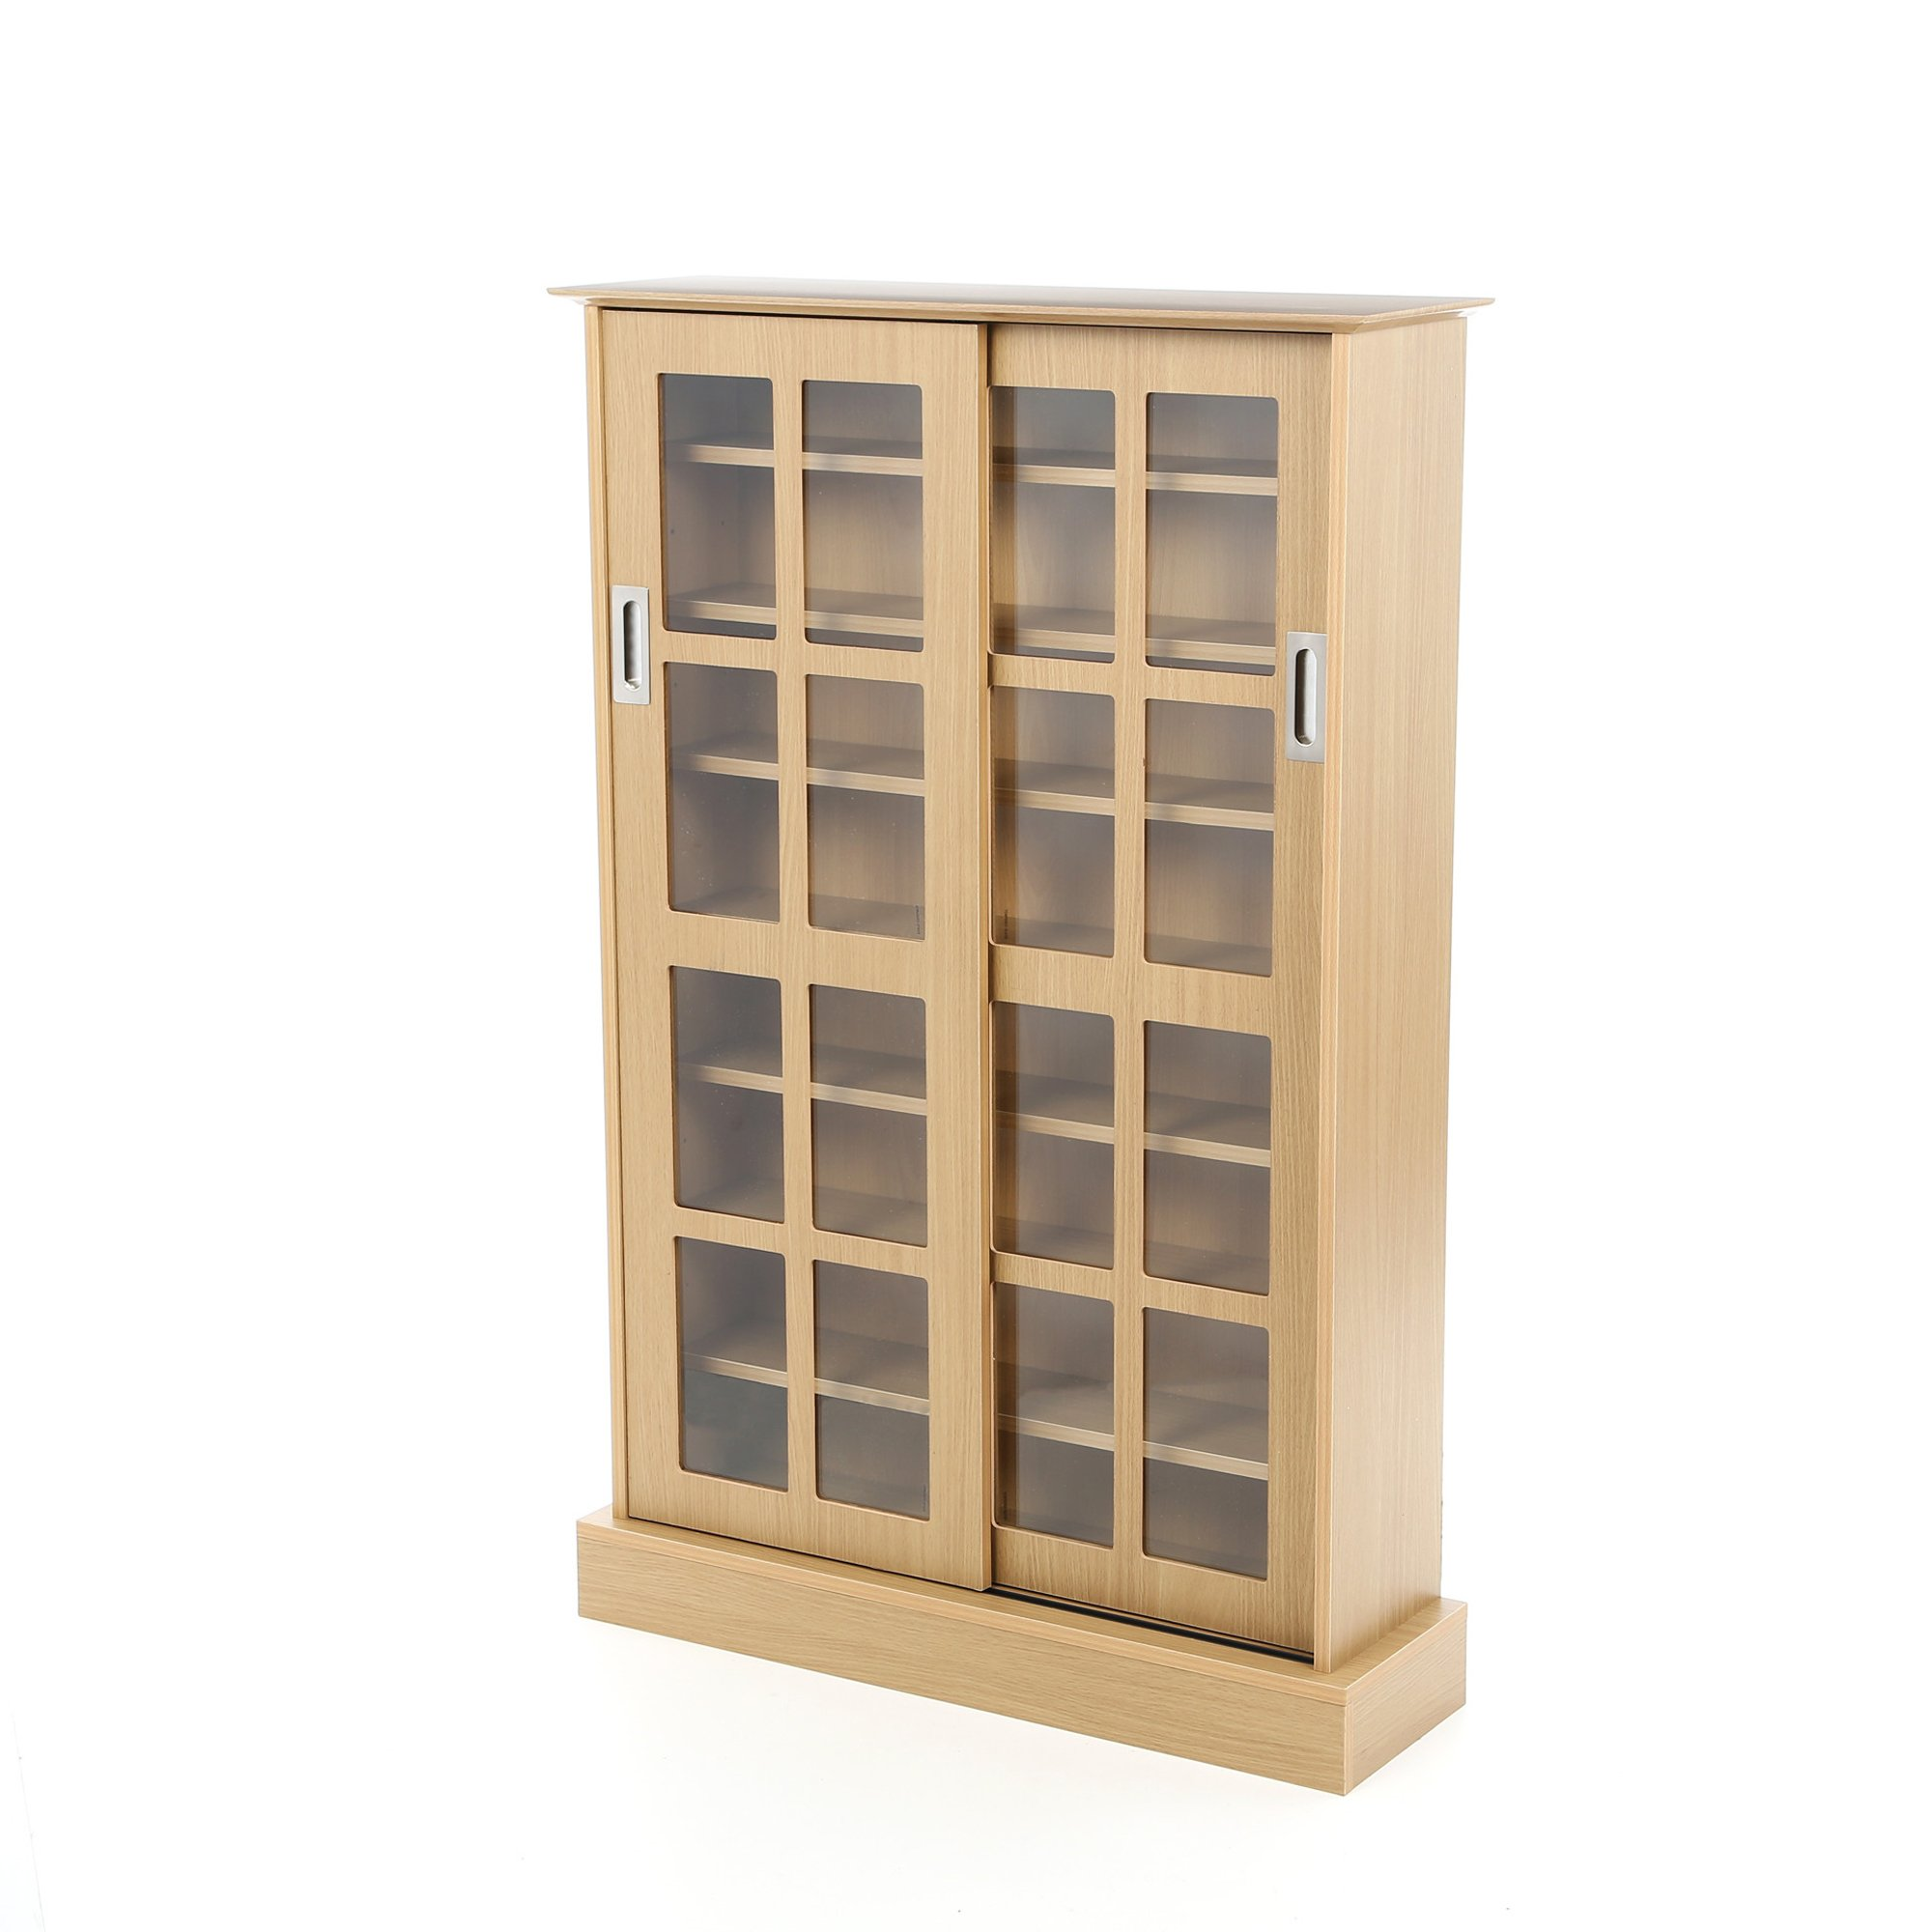 Multimedia Storage Cabinet With Sliding Glass Doors - Holds 576 CD or 192 DVD - Tall Contemporary Media Organizer (Maple)